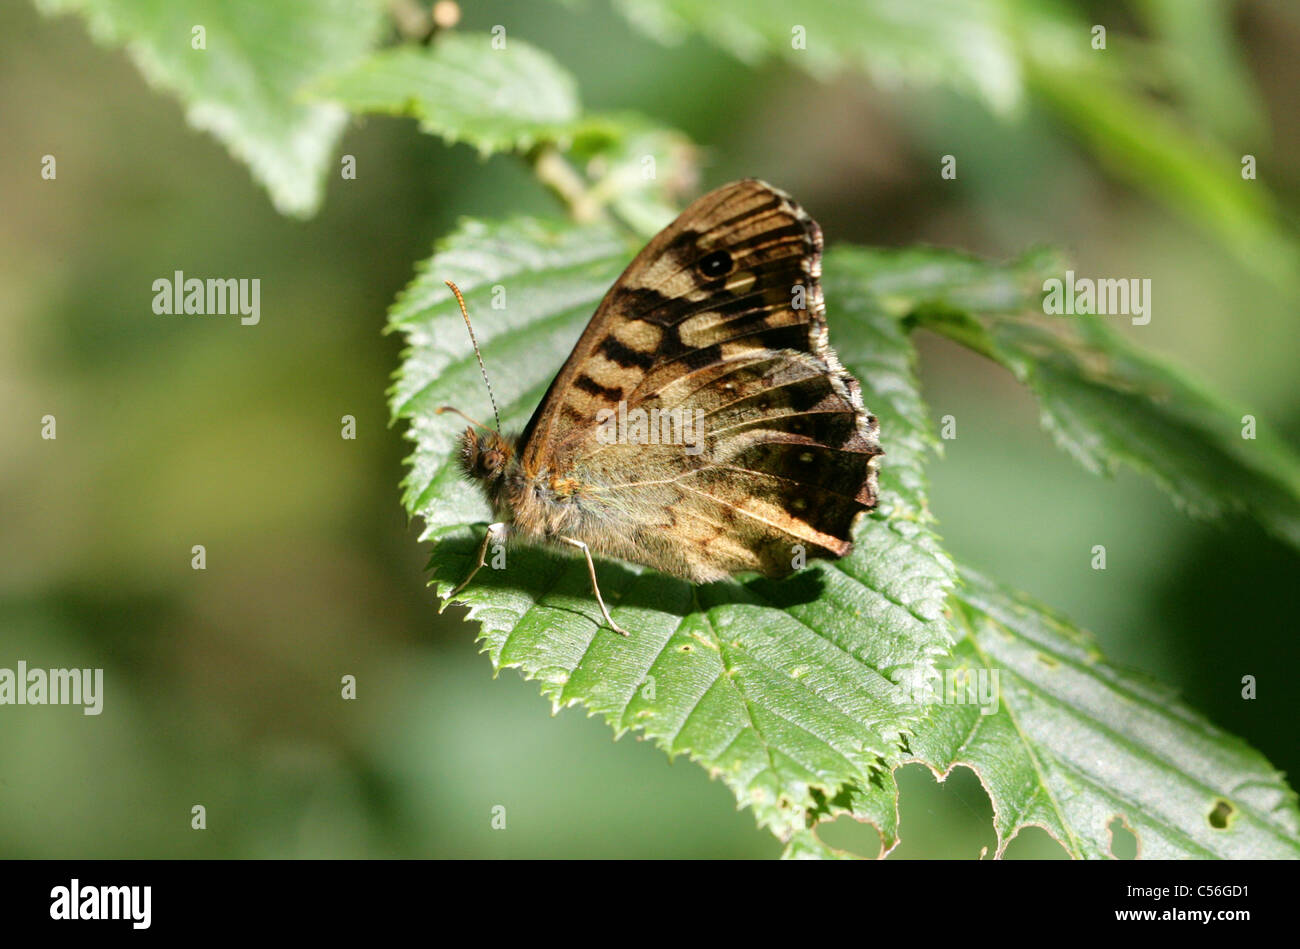 Speckled Wood Butterfly, Pararge aegeria, (Satyridae) Nymphalidae, Lepidoptera. - Stock Image